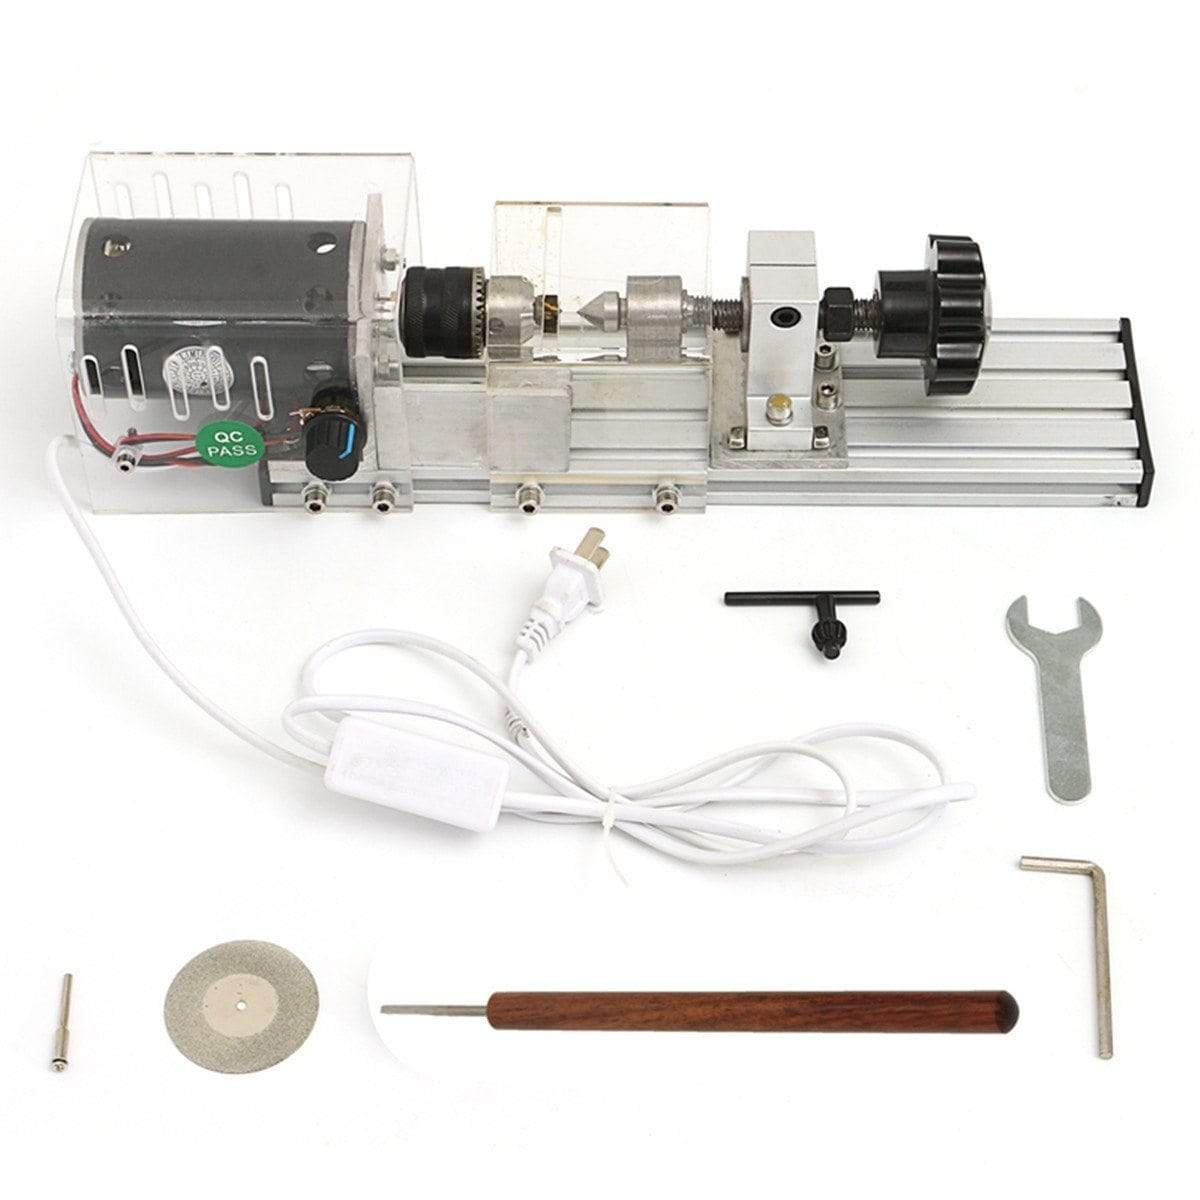 Horizon Care 350W Mini Lathe Machine Woodworking DIY Set with Power Adapter